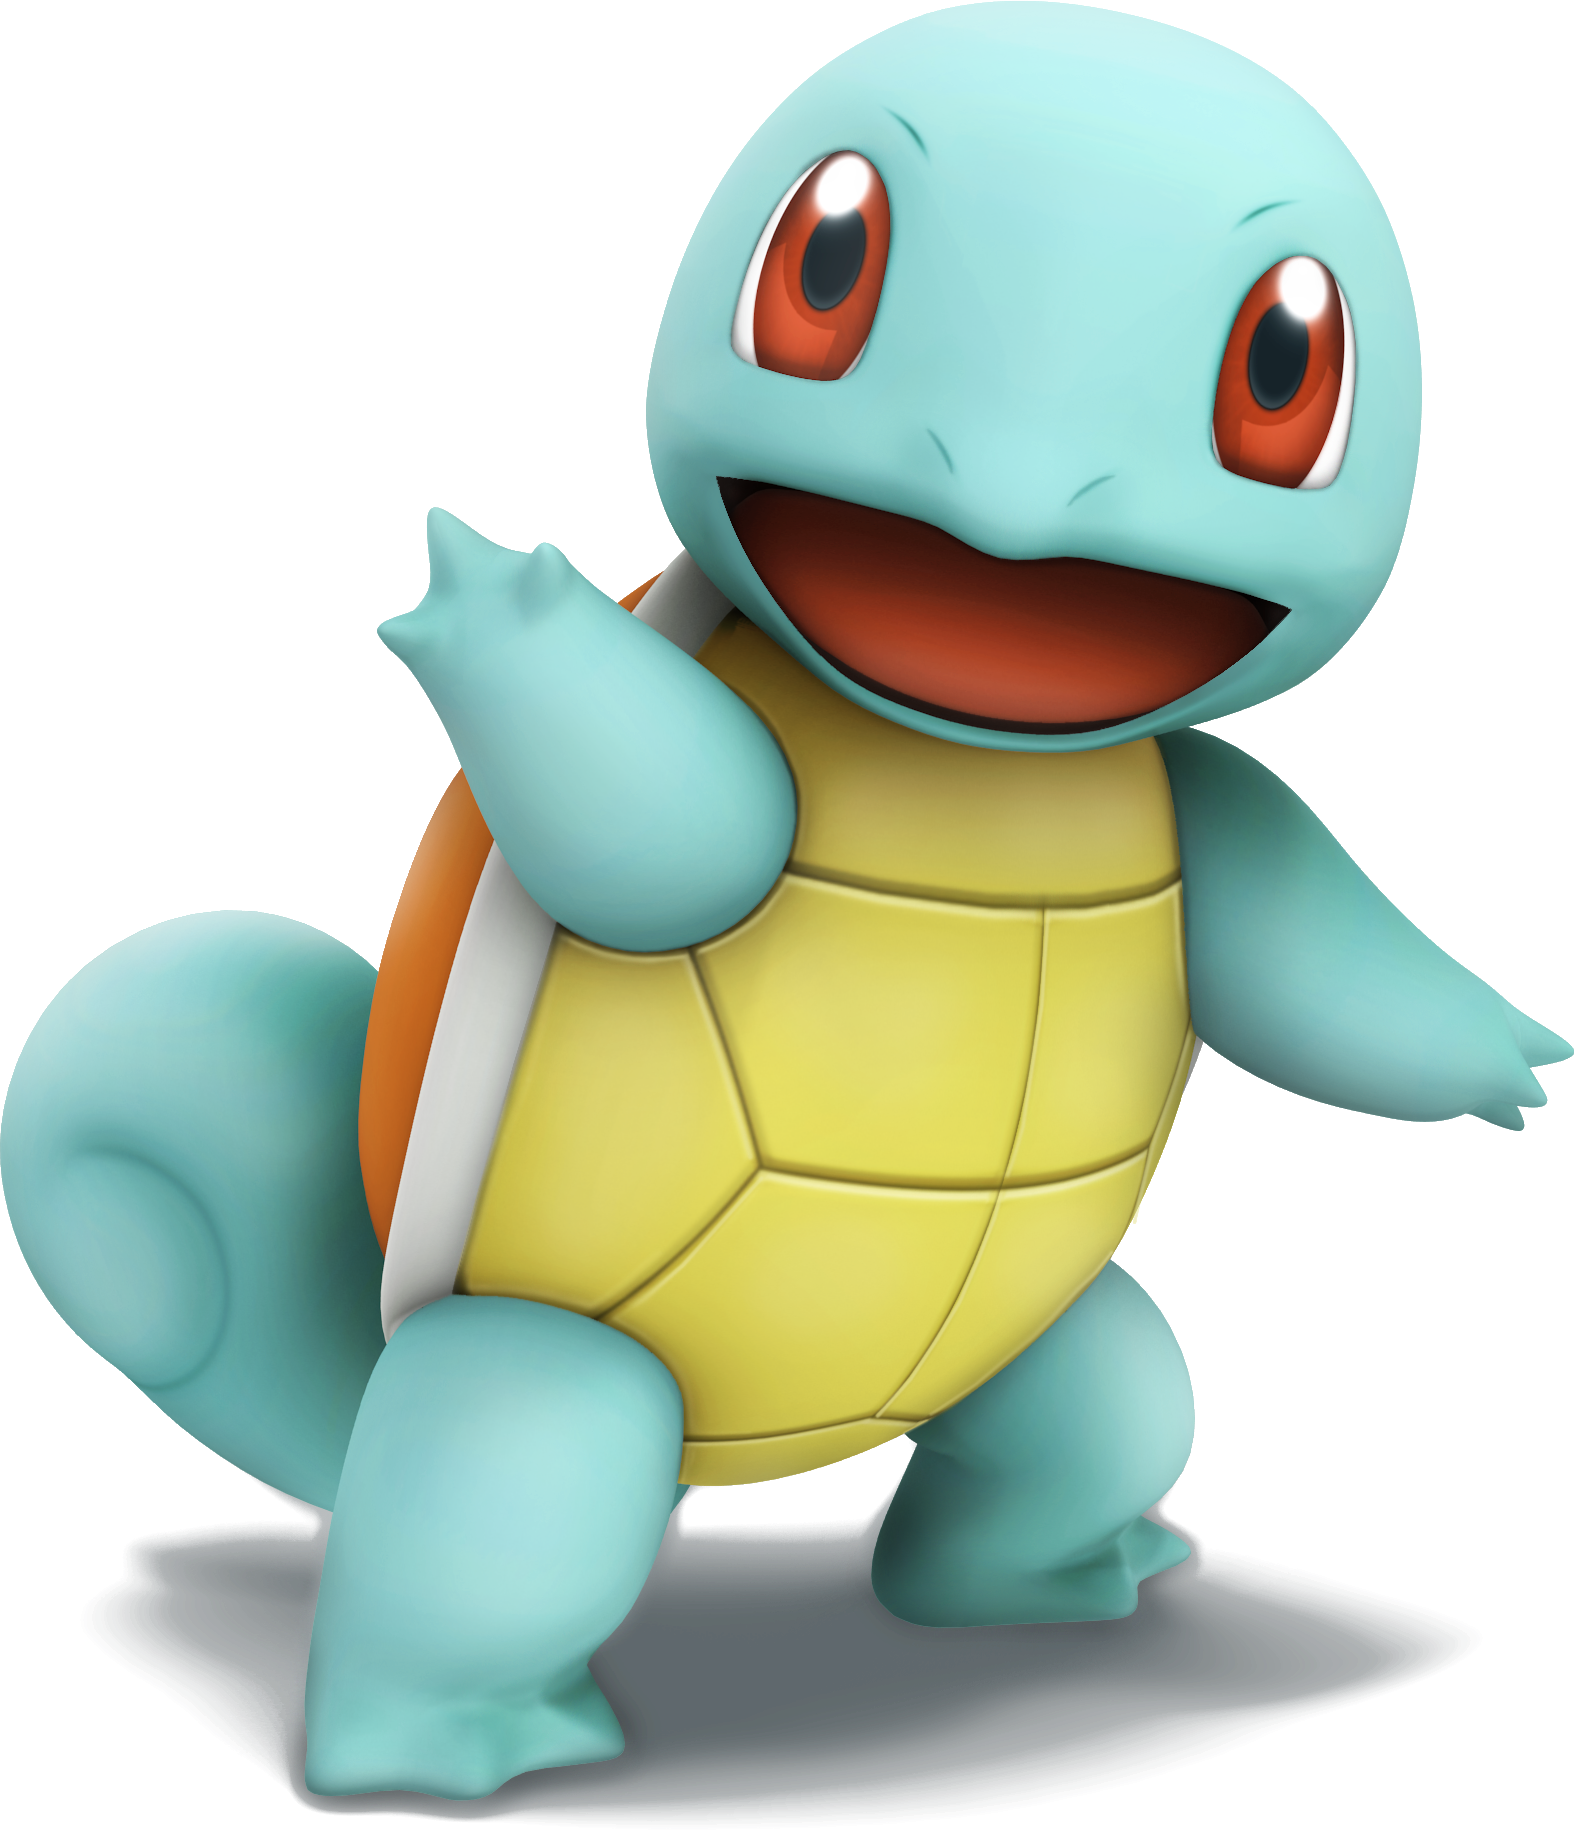 Image smash bros trophy. Squirtle png jpg transparent stock